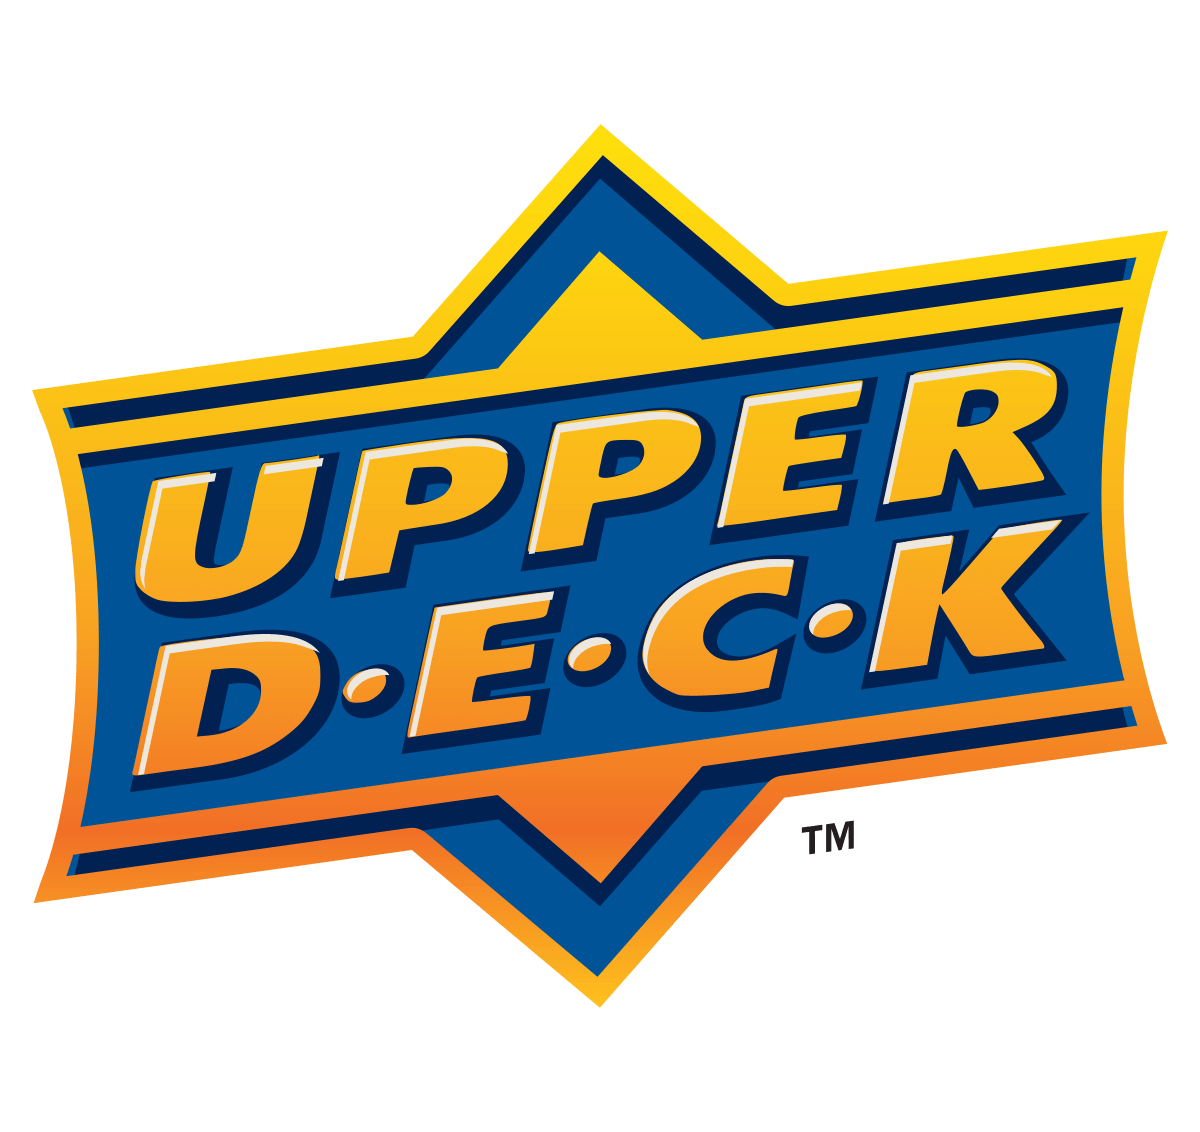 Upper deck to irs. Want clipart tax collector